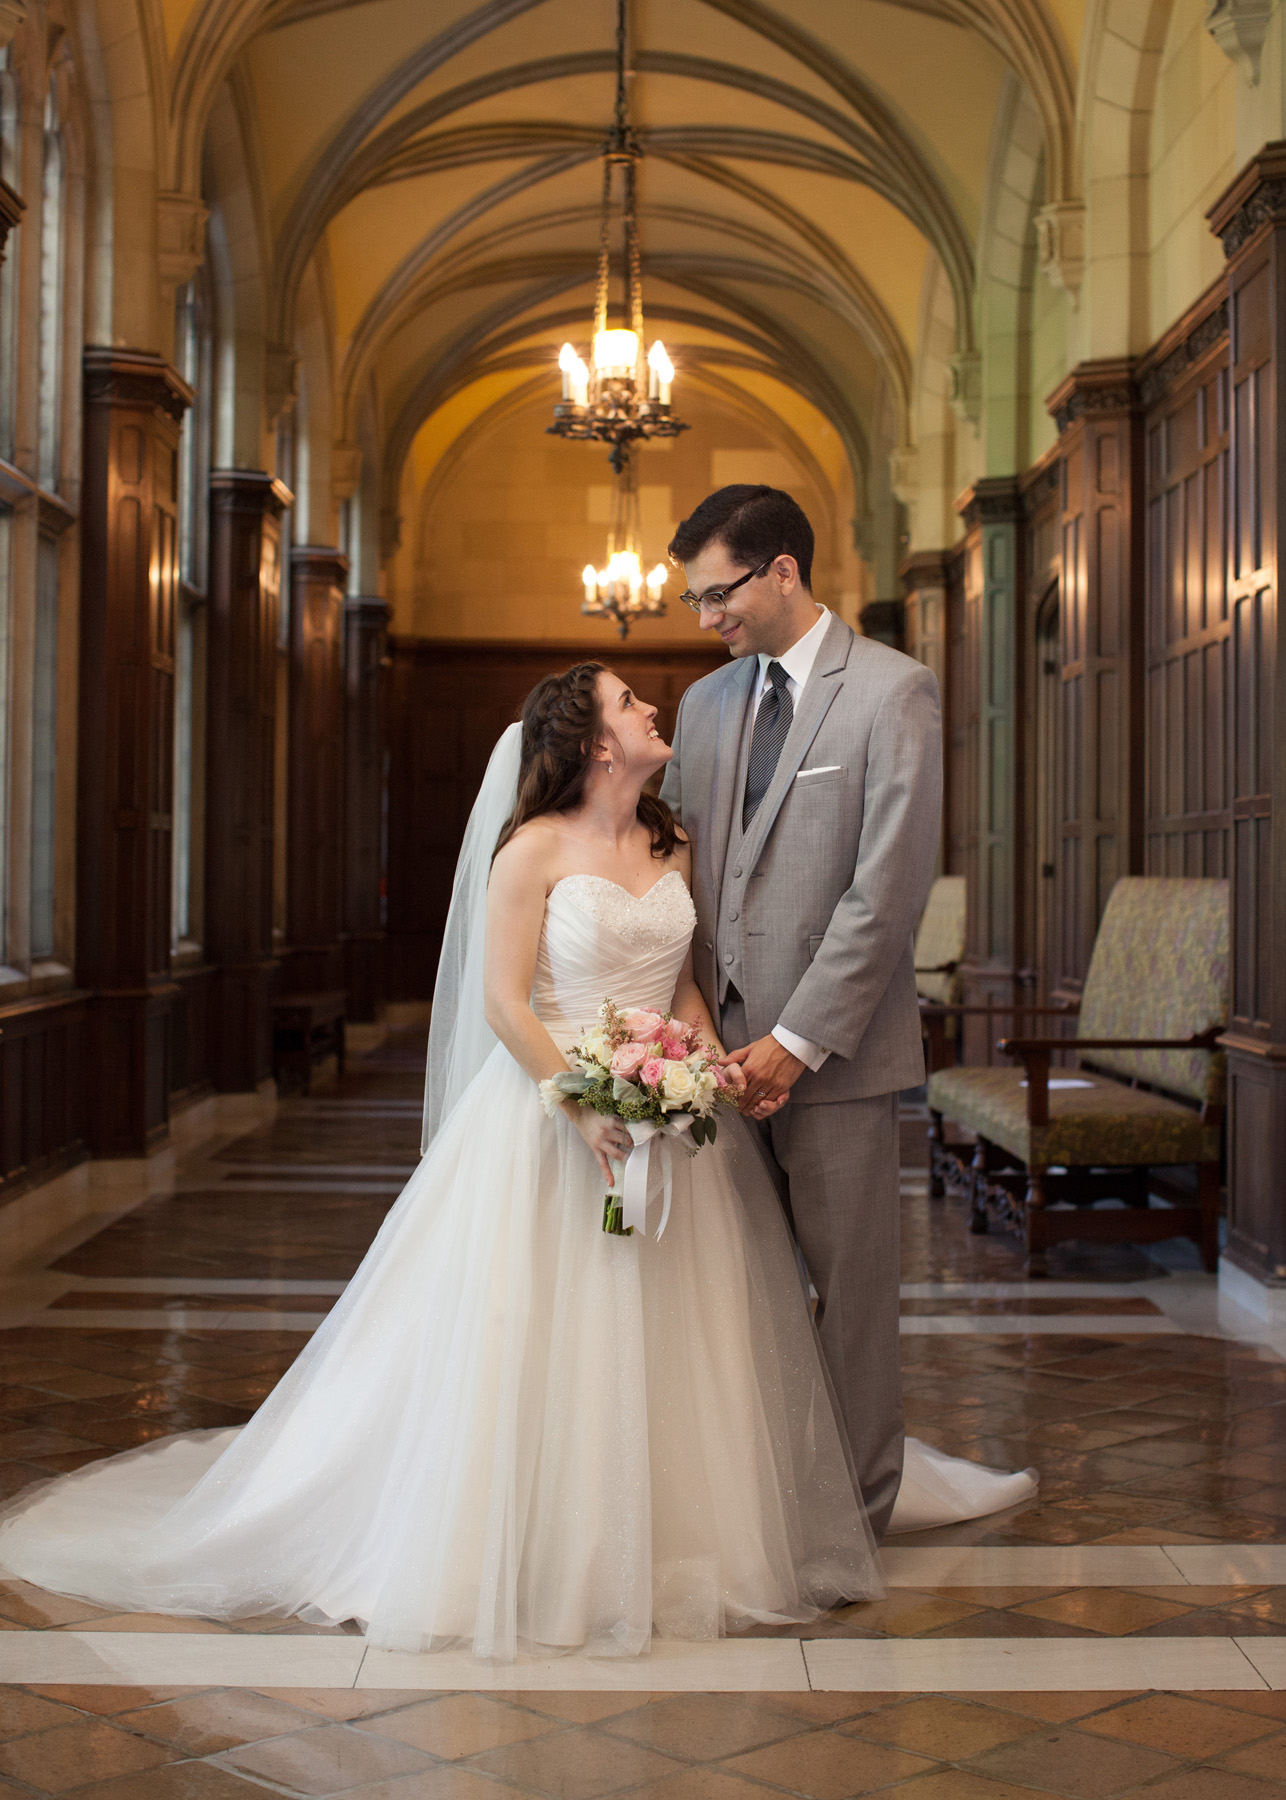 UofM_weddings_hull_melanie_reyes_050